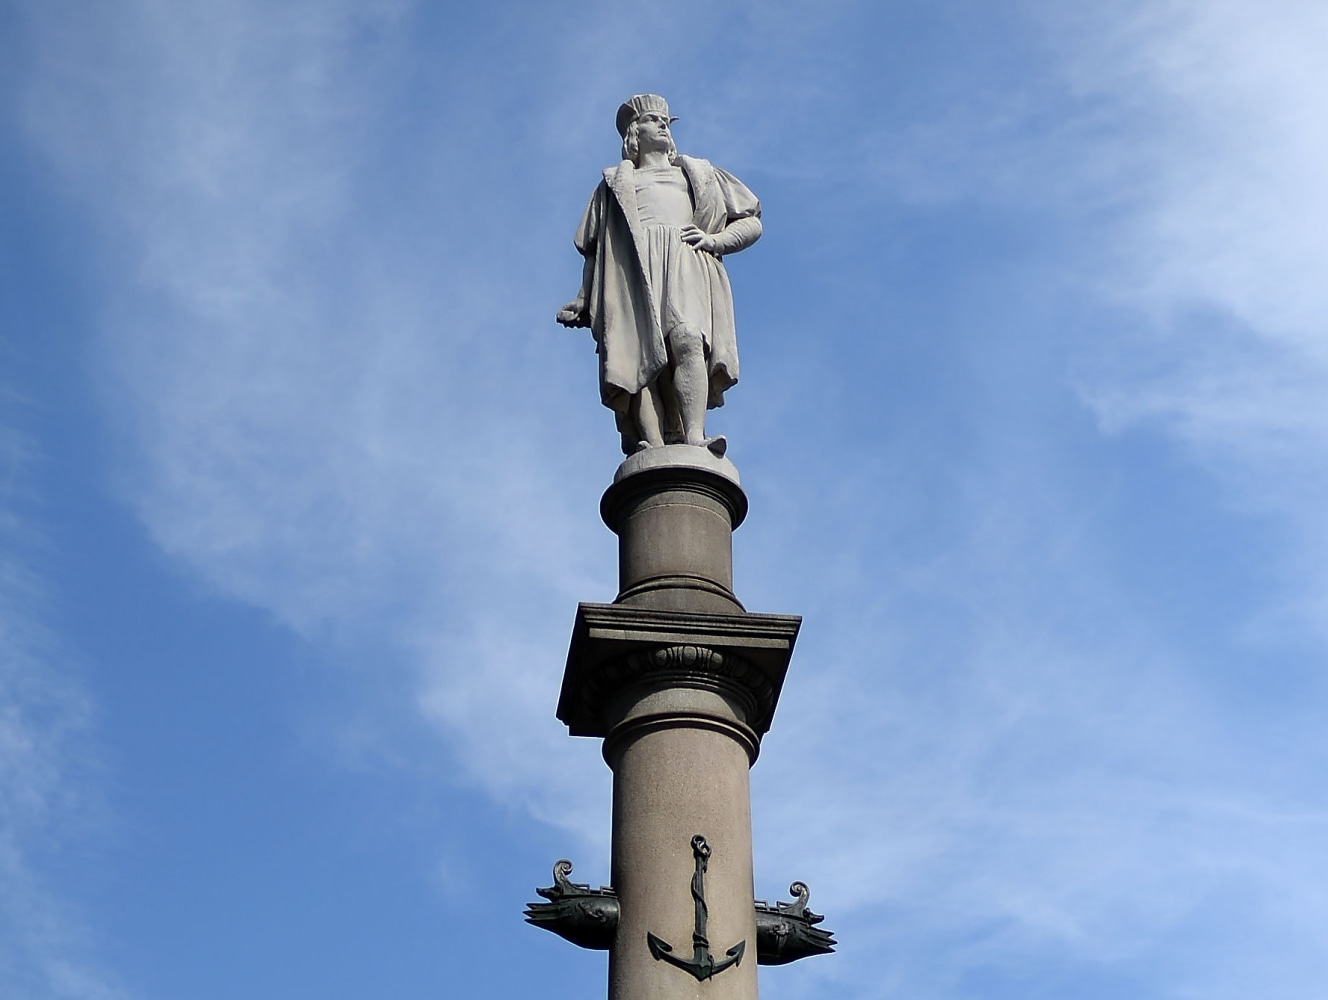 58857ba529d3 The statue of Christopher Columbus by Gaetano Russo stands in Columbus  Circle in New York. Andrew H. Walker   Getty Images file